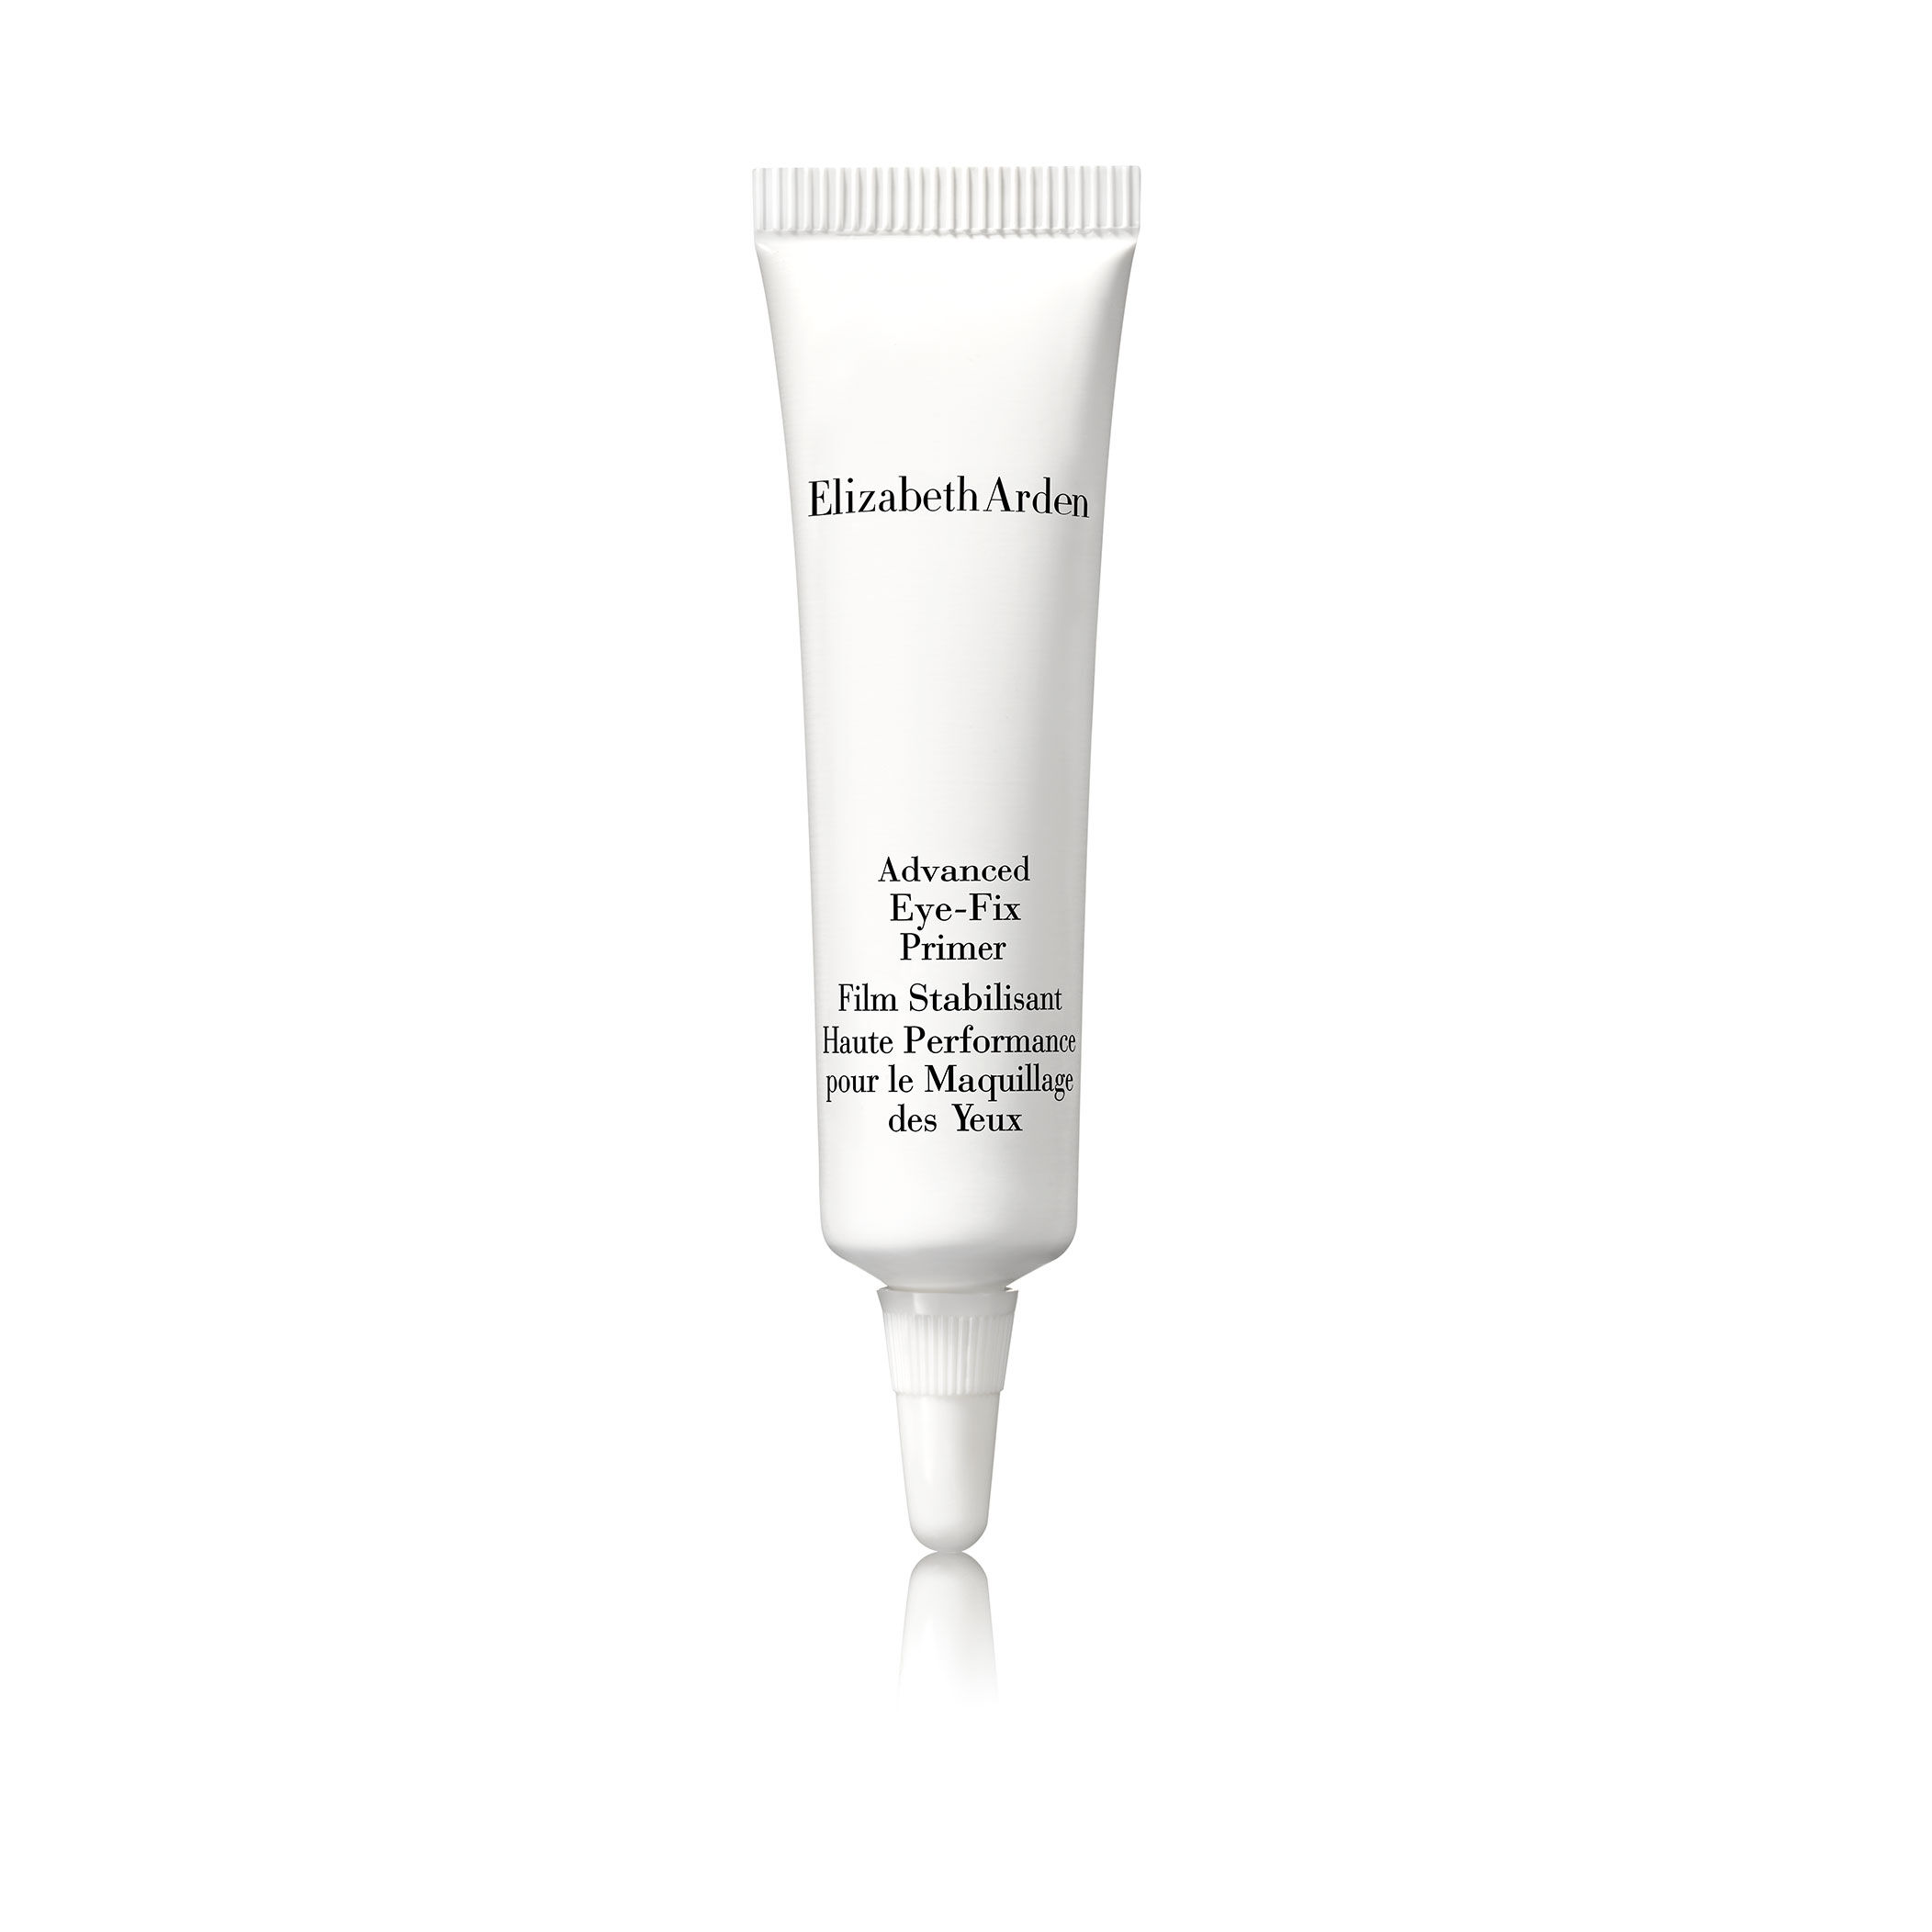 Effective, ingenious Eye-Fix works as an invisible shield between eyelids and eyecolor, so shadows, liner and powders stay put, stay fresh and color-true longer.